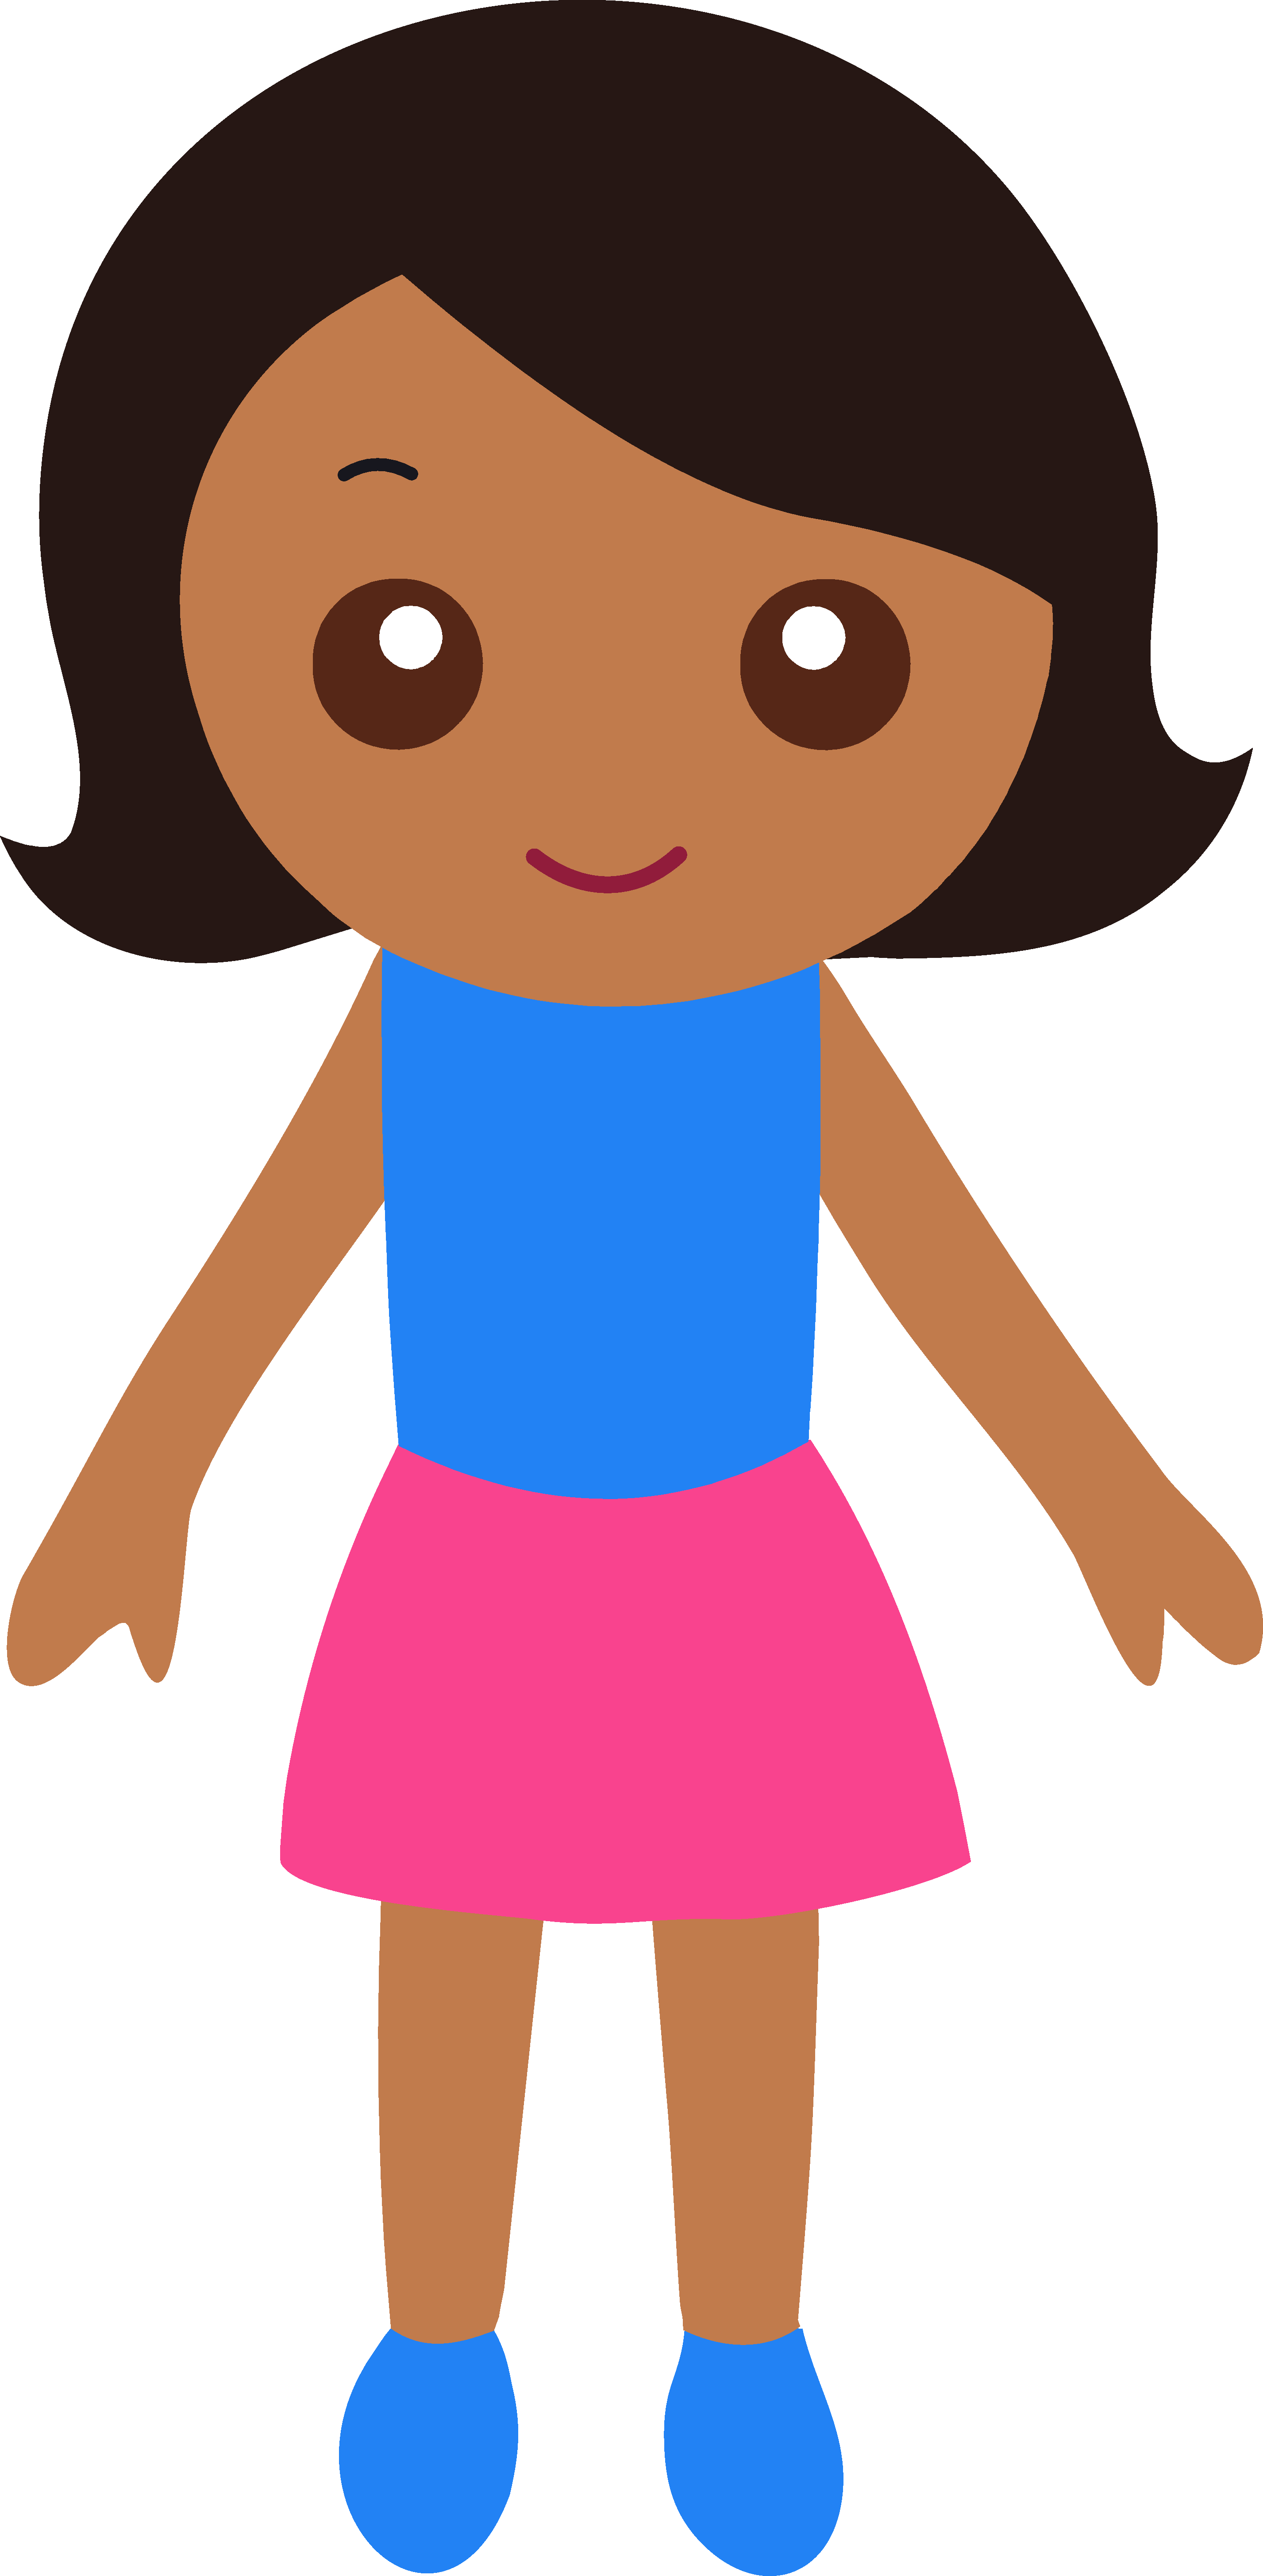 Girl clipart #2, Download drawings